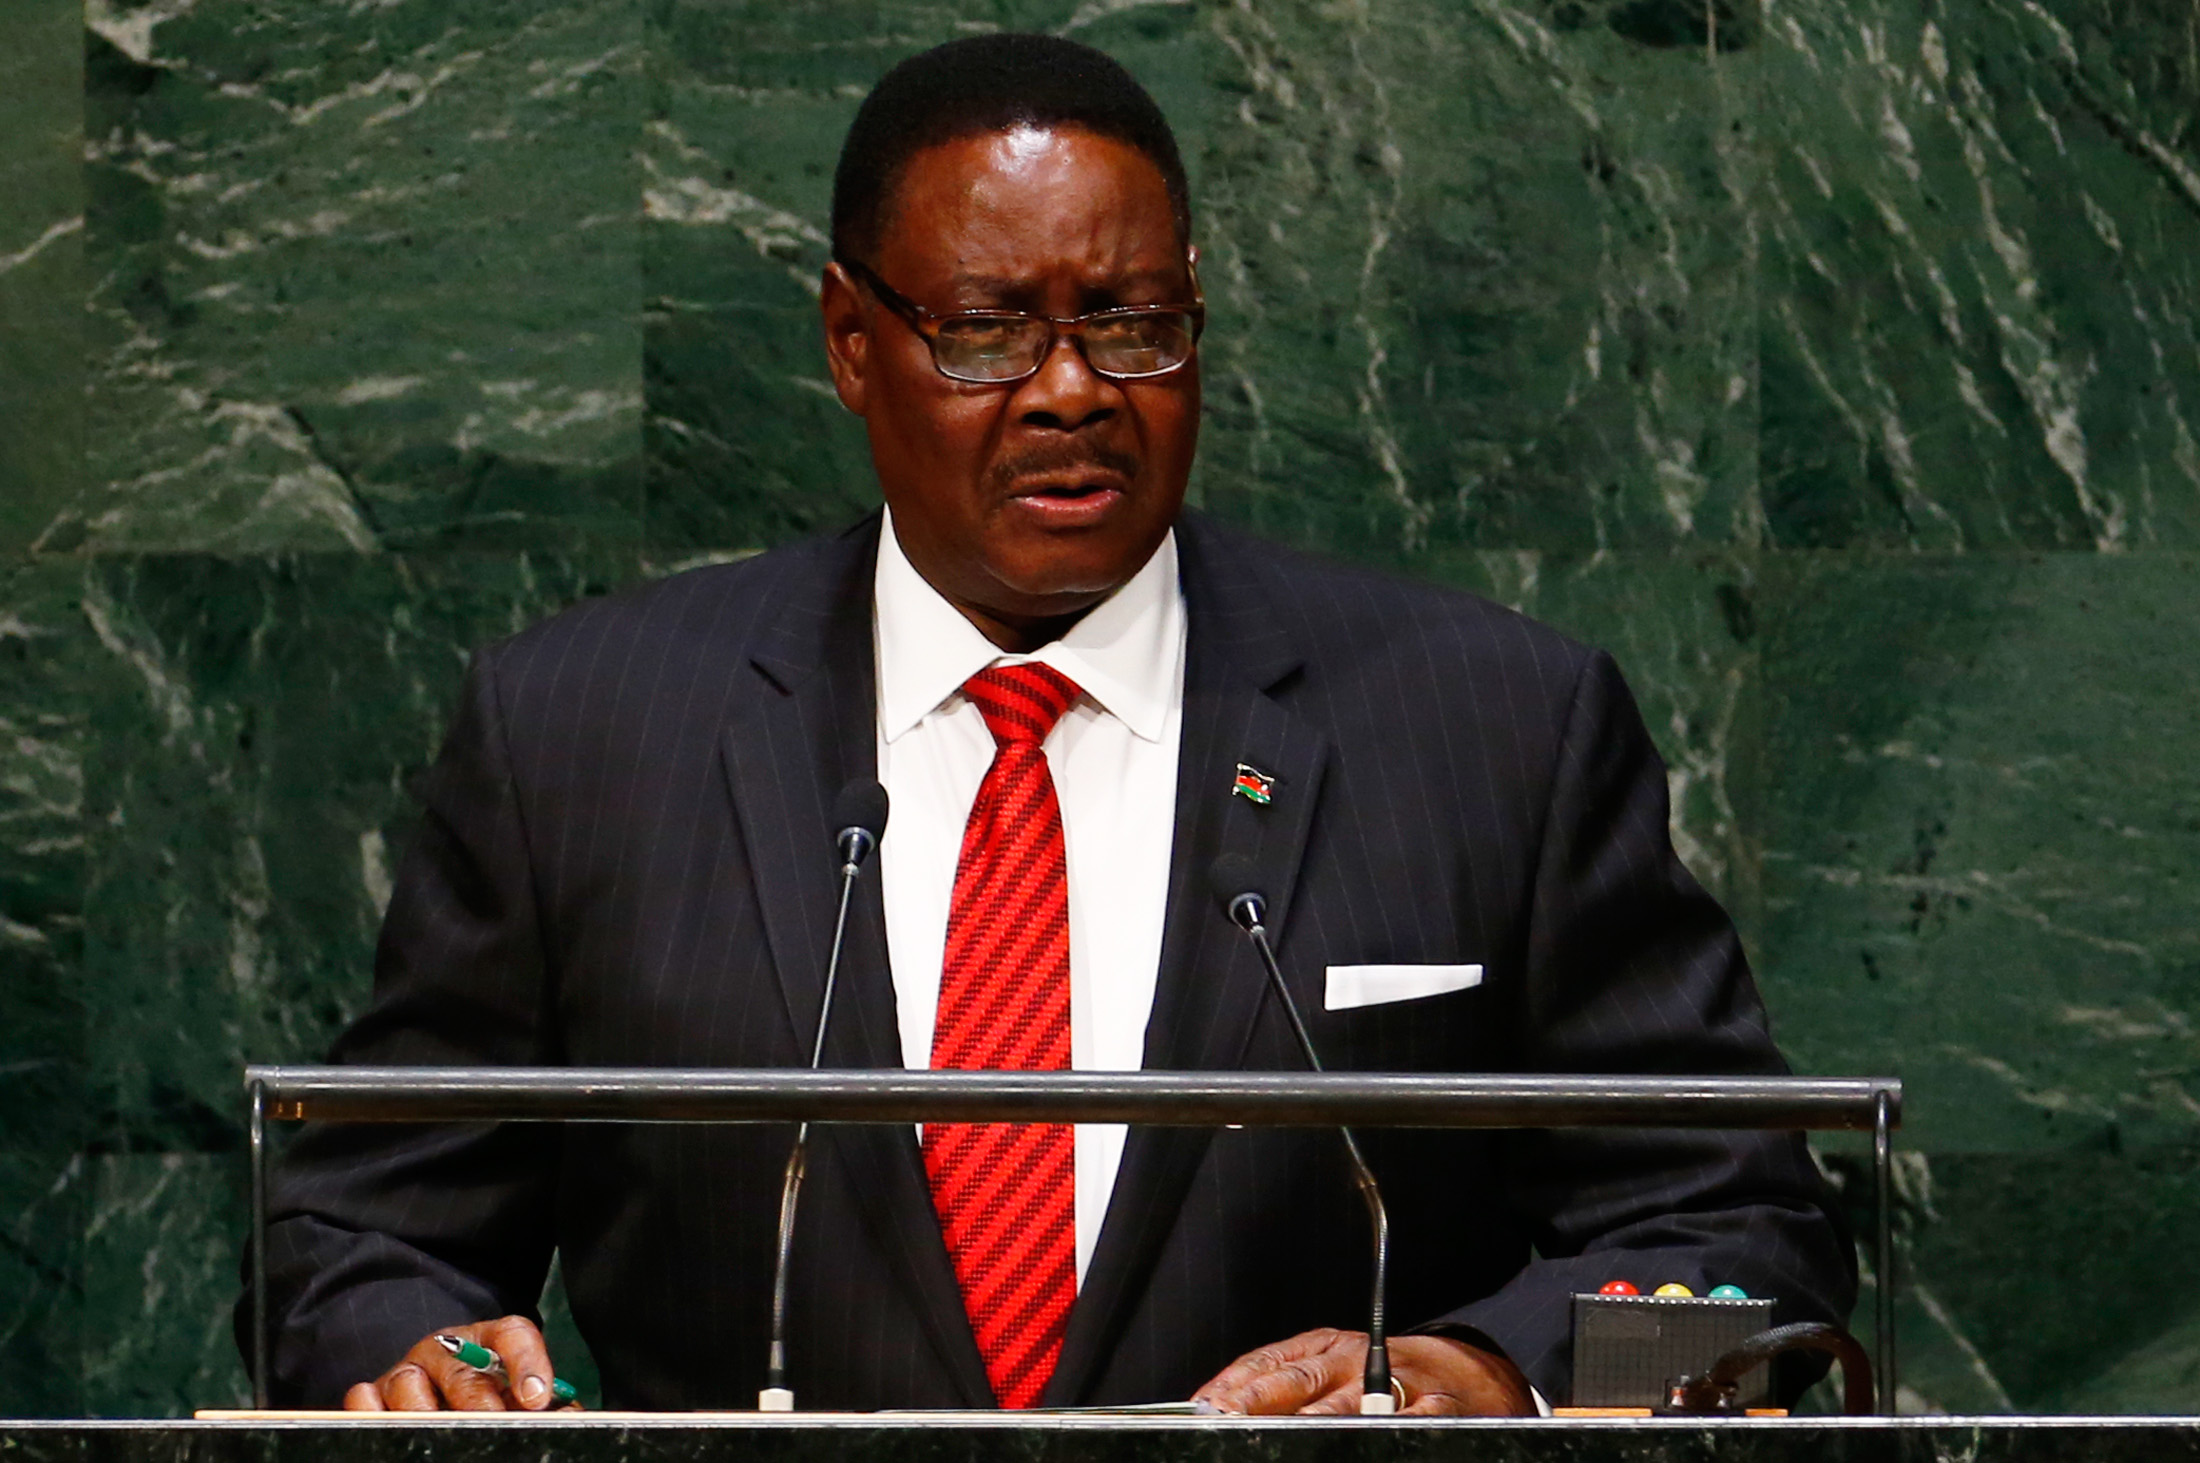 Arthur Peter Mutharika, President of Malawi, addresses the 69th United Nations General Assembly at the U.N. headquarters in New York September 25, 2014.